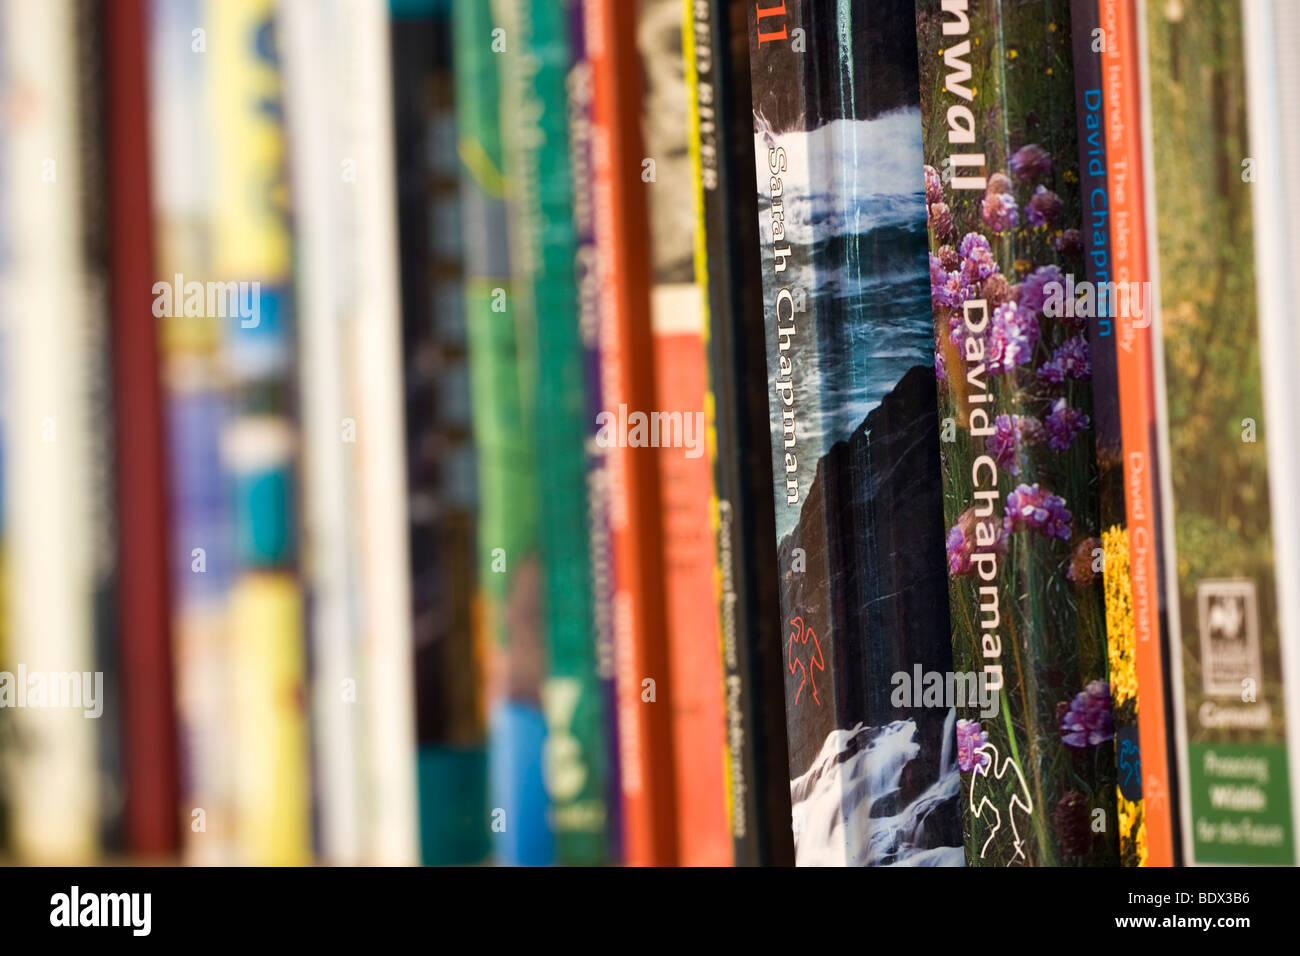 book shelf with collection of books - Stock Image